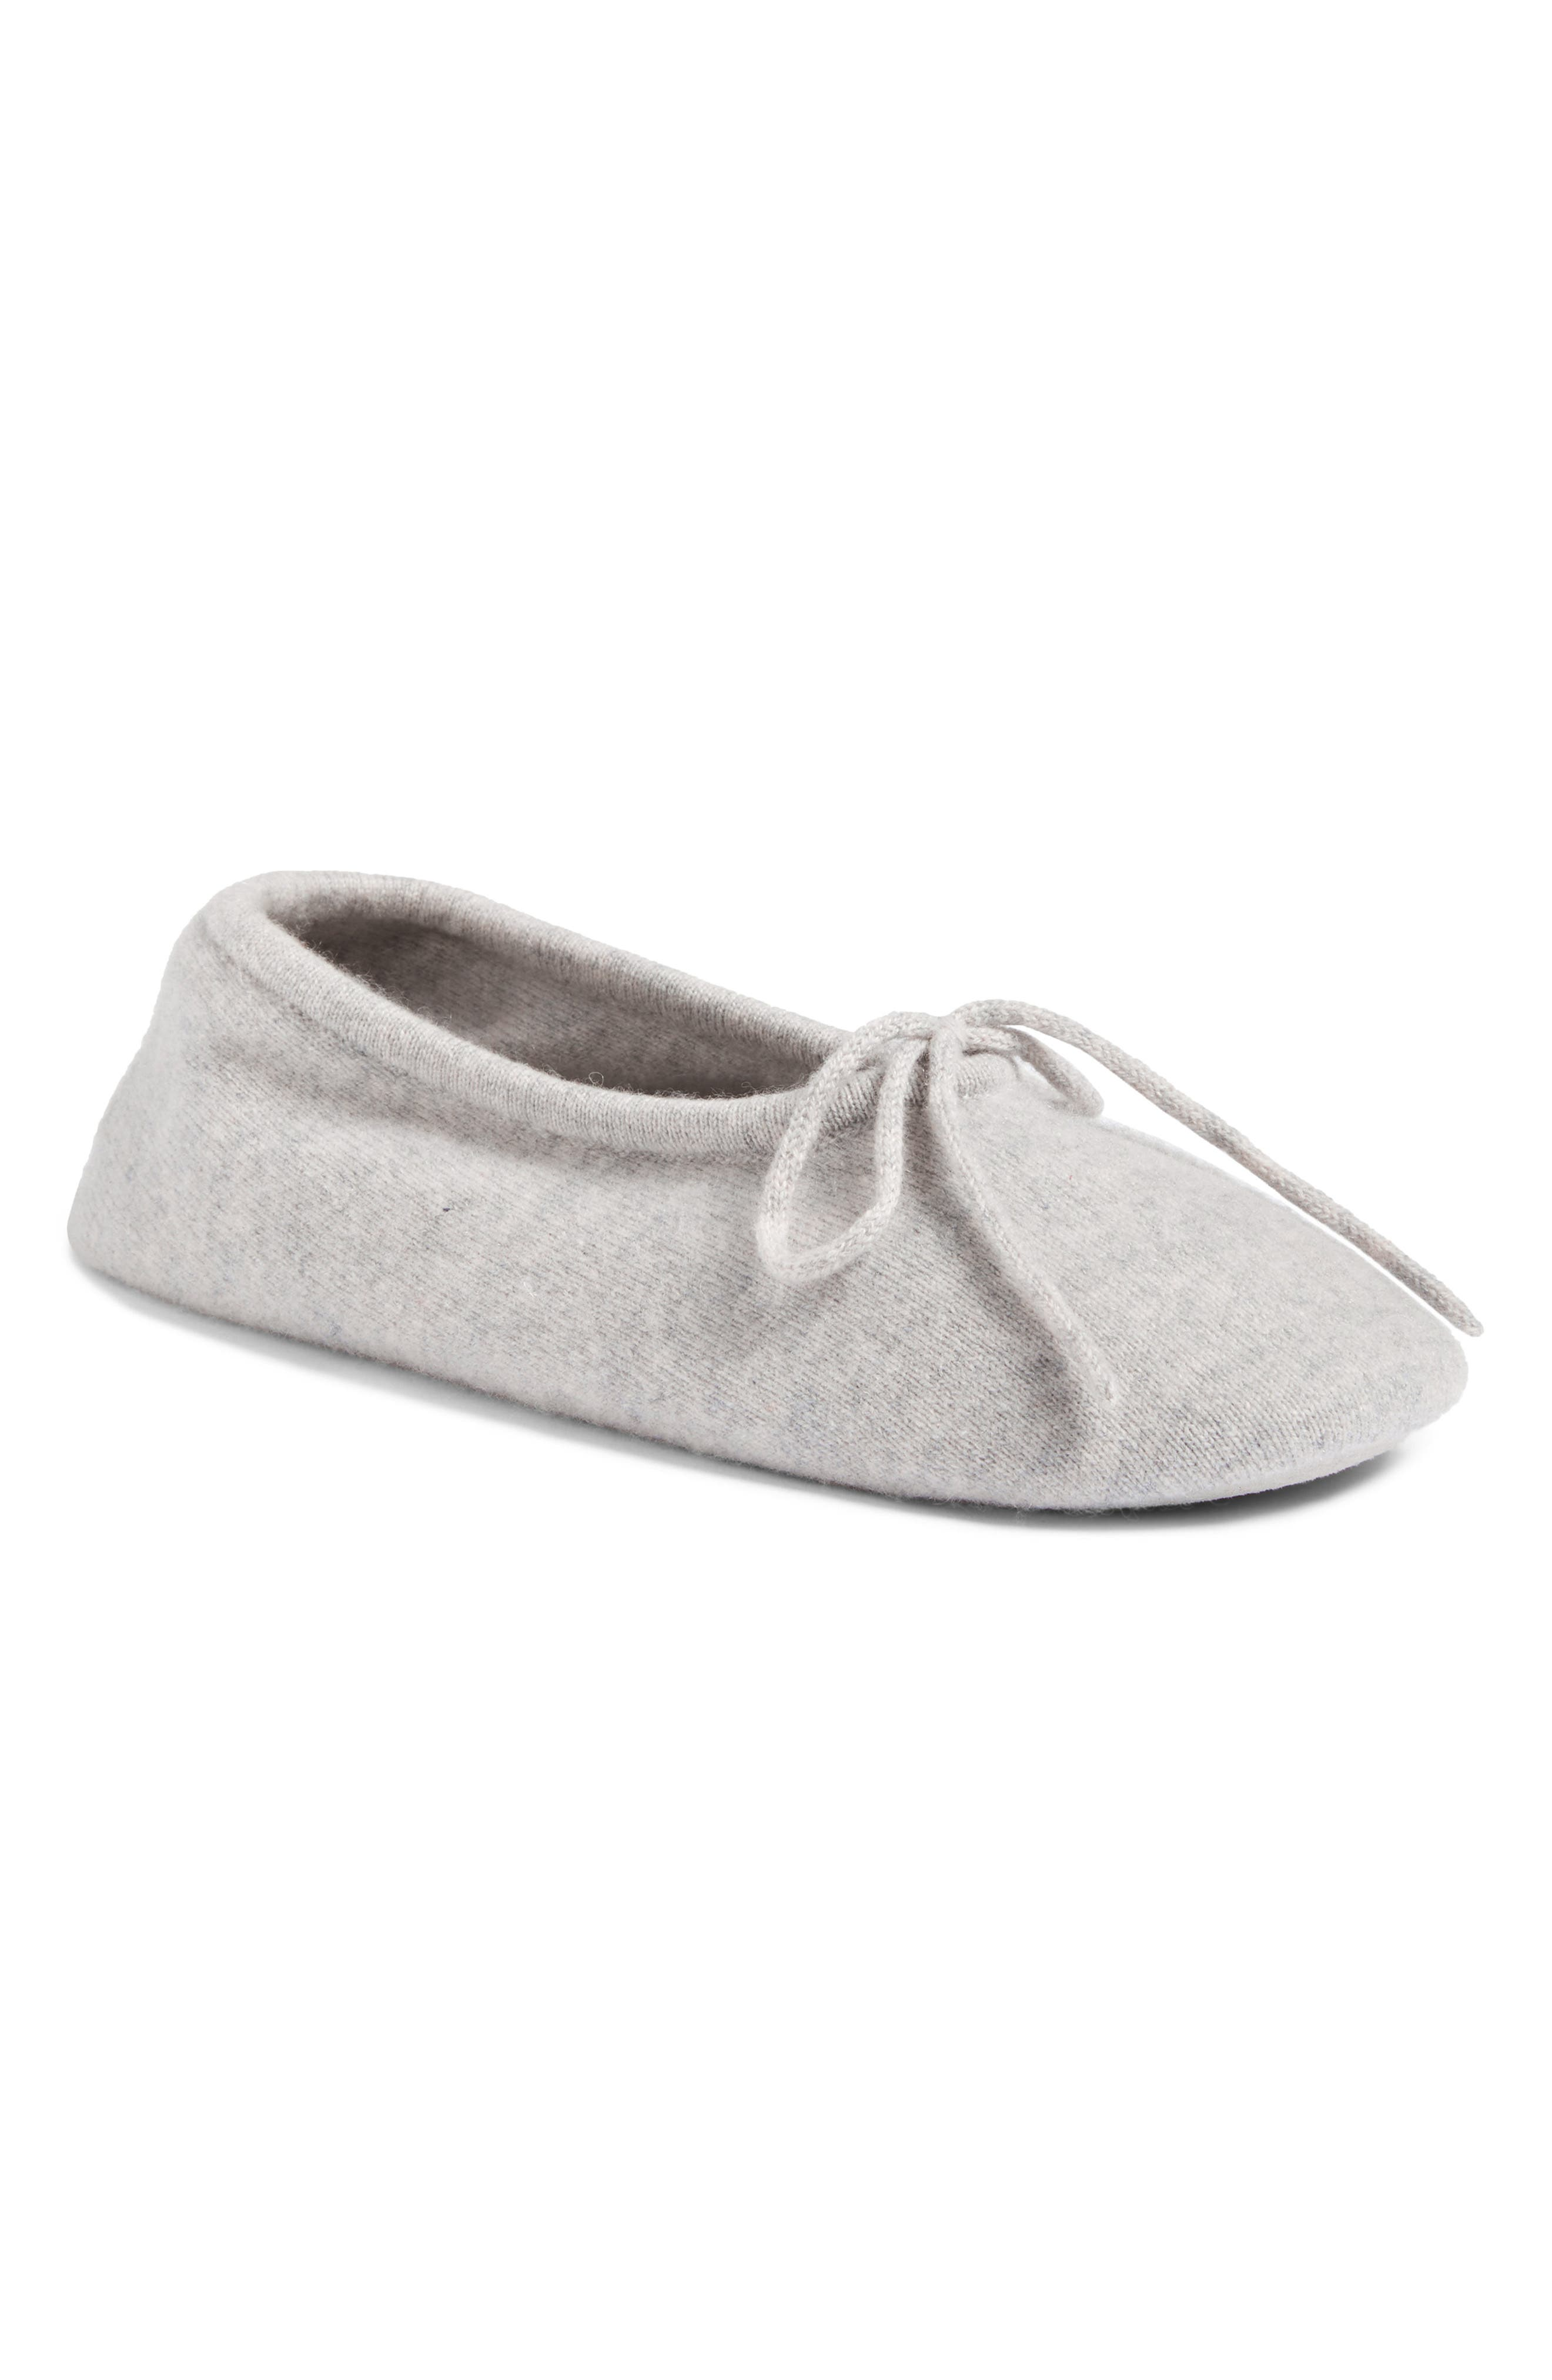 Wool & Cashmere Ballerina Slippers,                         Main,                         color, Grey Soft Heather